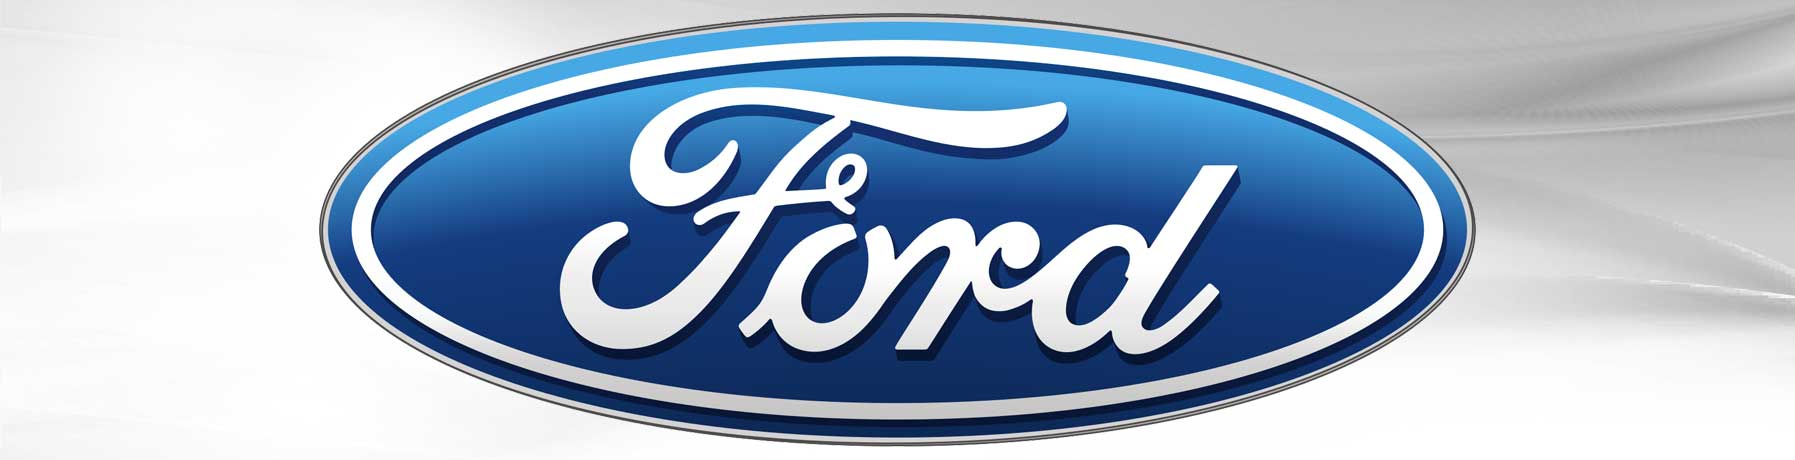 ford.banner